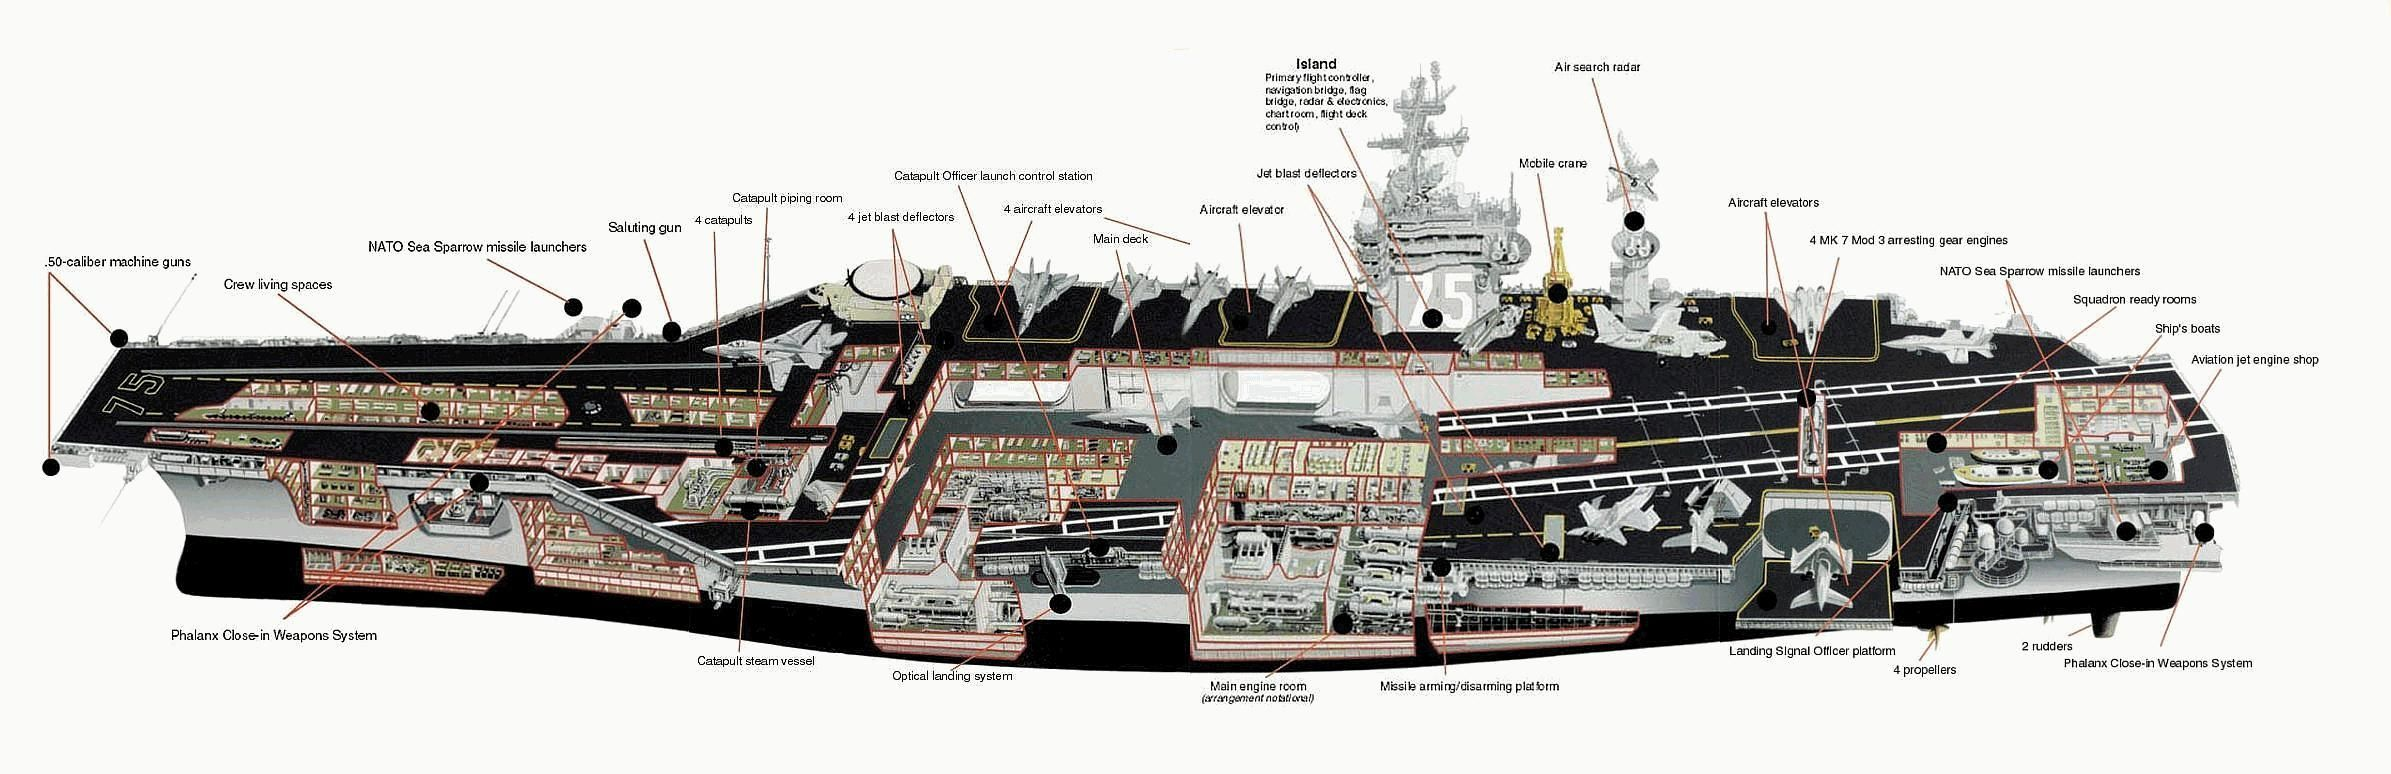 Aircraft Carrier Flight Deck Diagram 2005 Chevy Equinox Wiring Two Ineedmorespace Co Uss Theodore Roosevelt Cvn 71 Air Craft Cut A Way Rh Pinterest Com Catapult